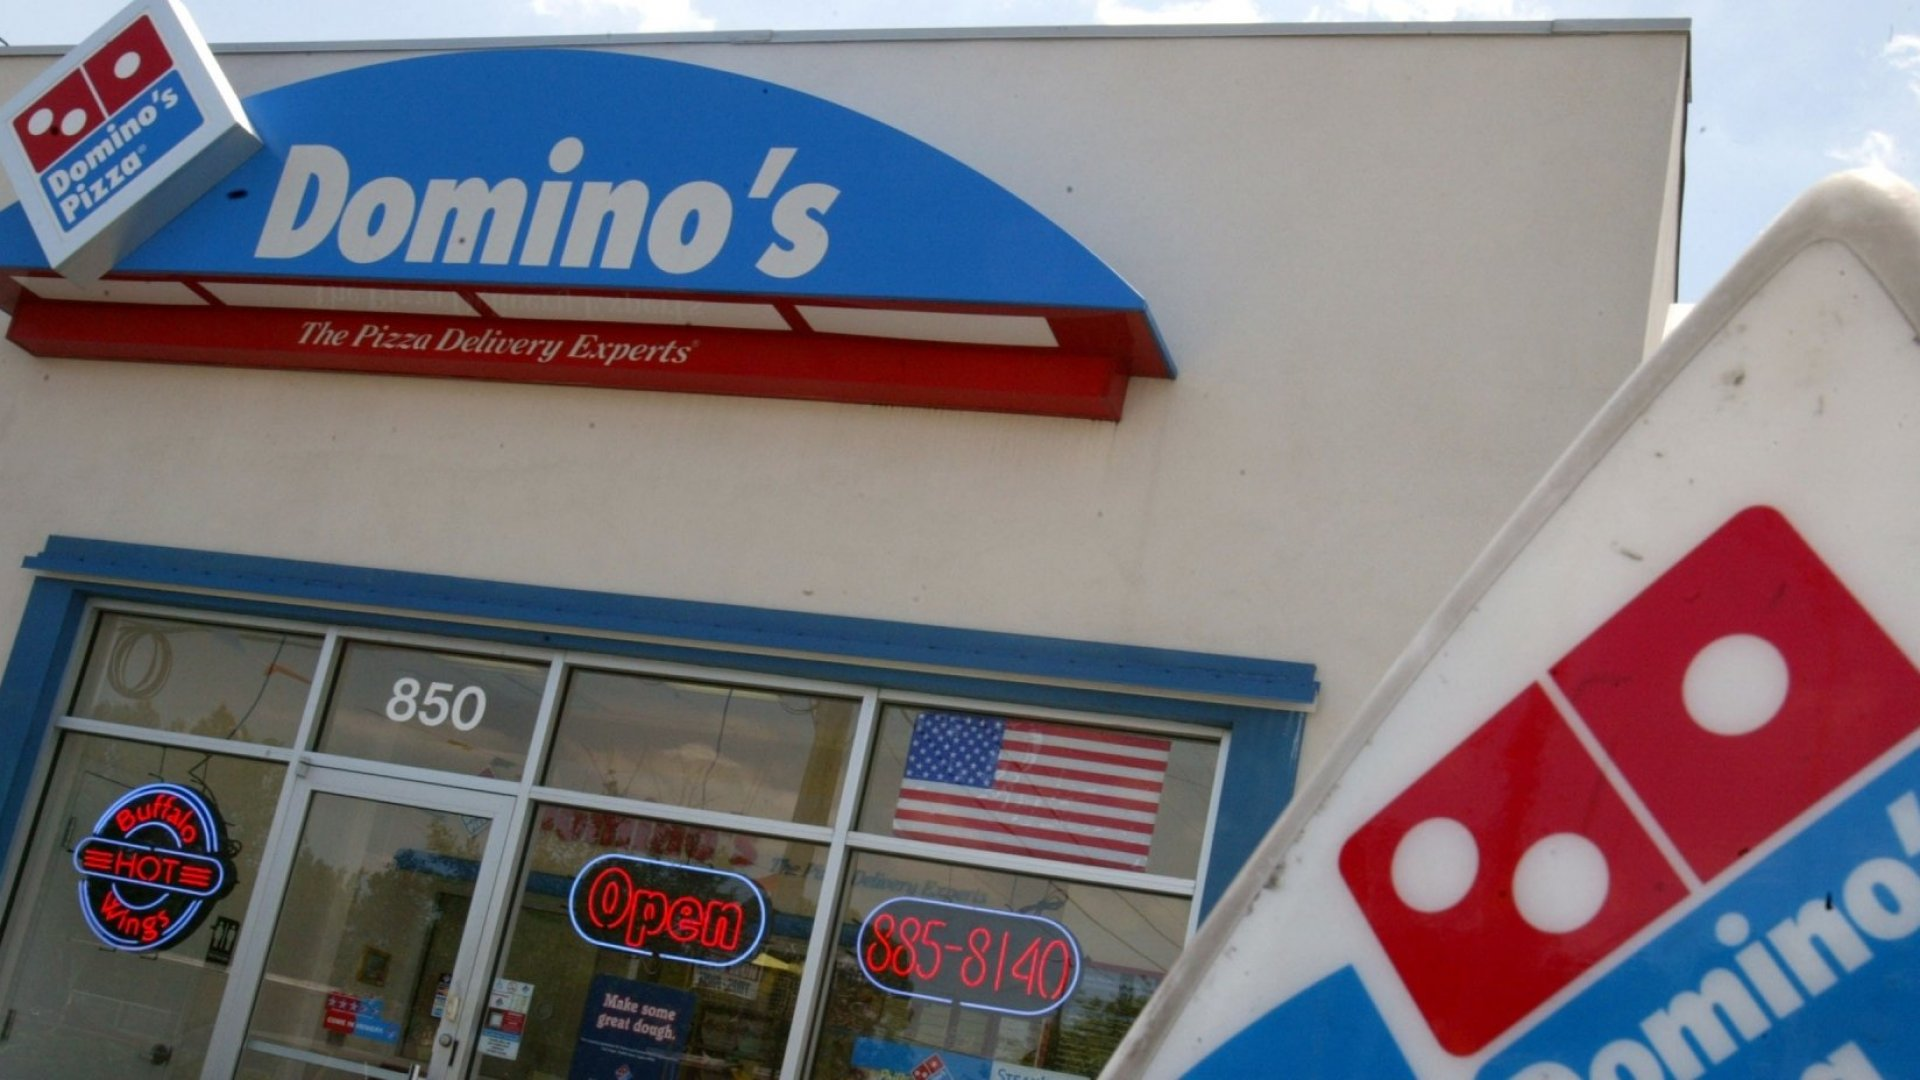 Domino's Pizza Just Revealed Something Very Strange and Surprising. (People Find It Funny, but It's Pretty Scary When You Think About It)